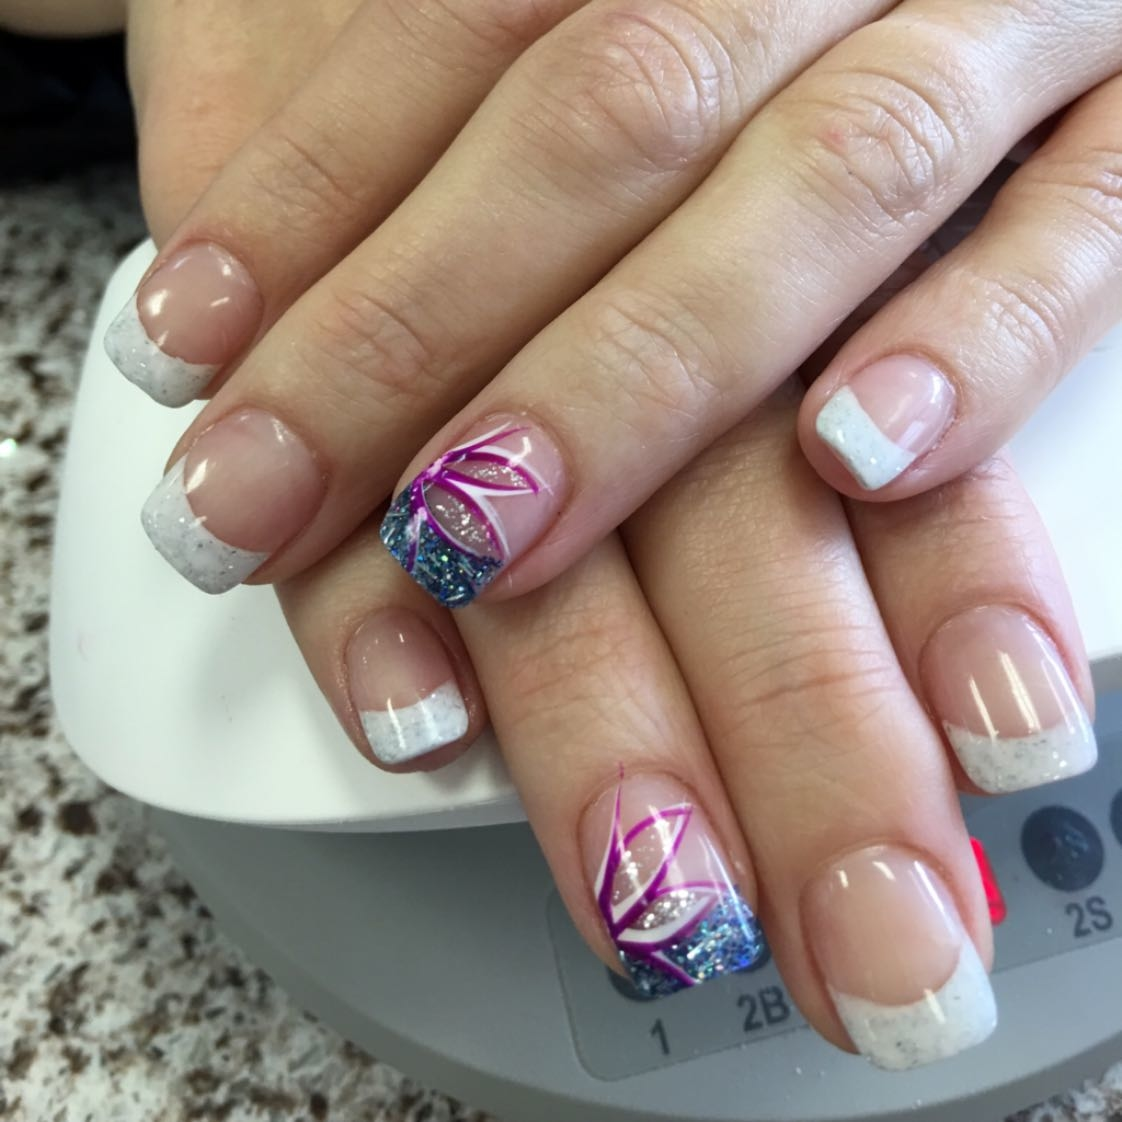 Venetian Nails Amp Spa Coupons Near Me In State College 8coupons